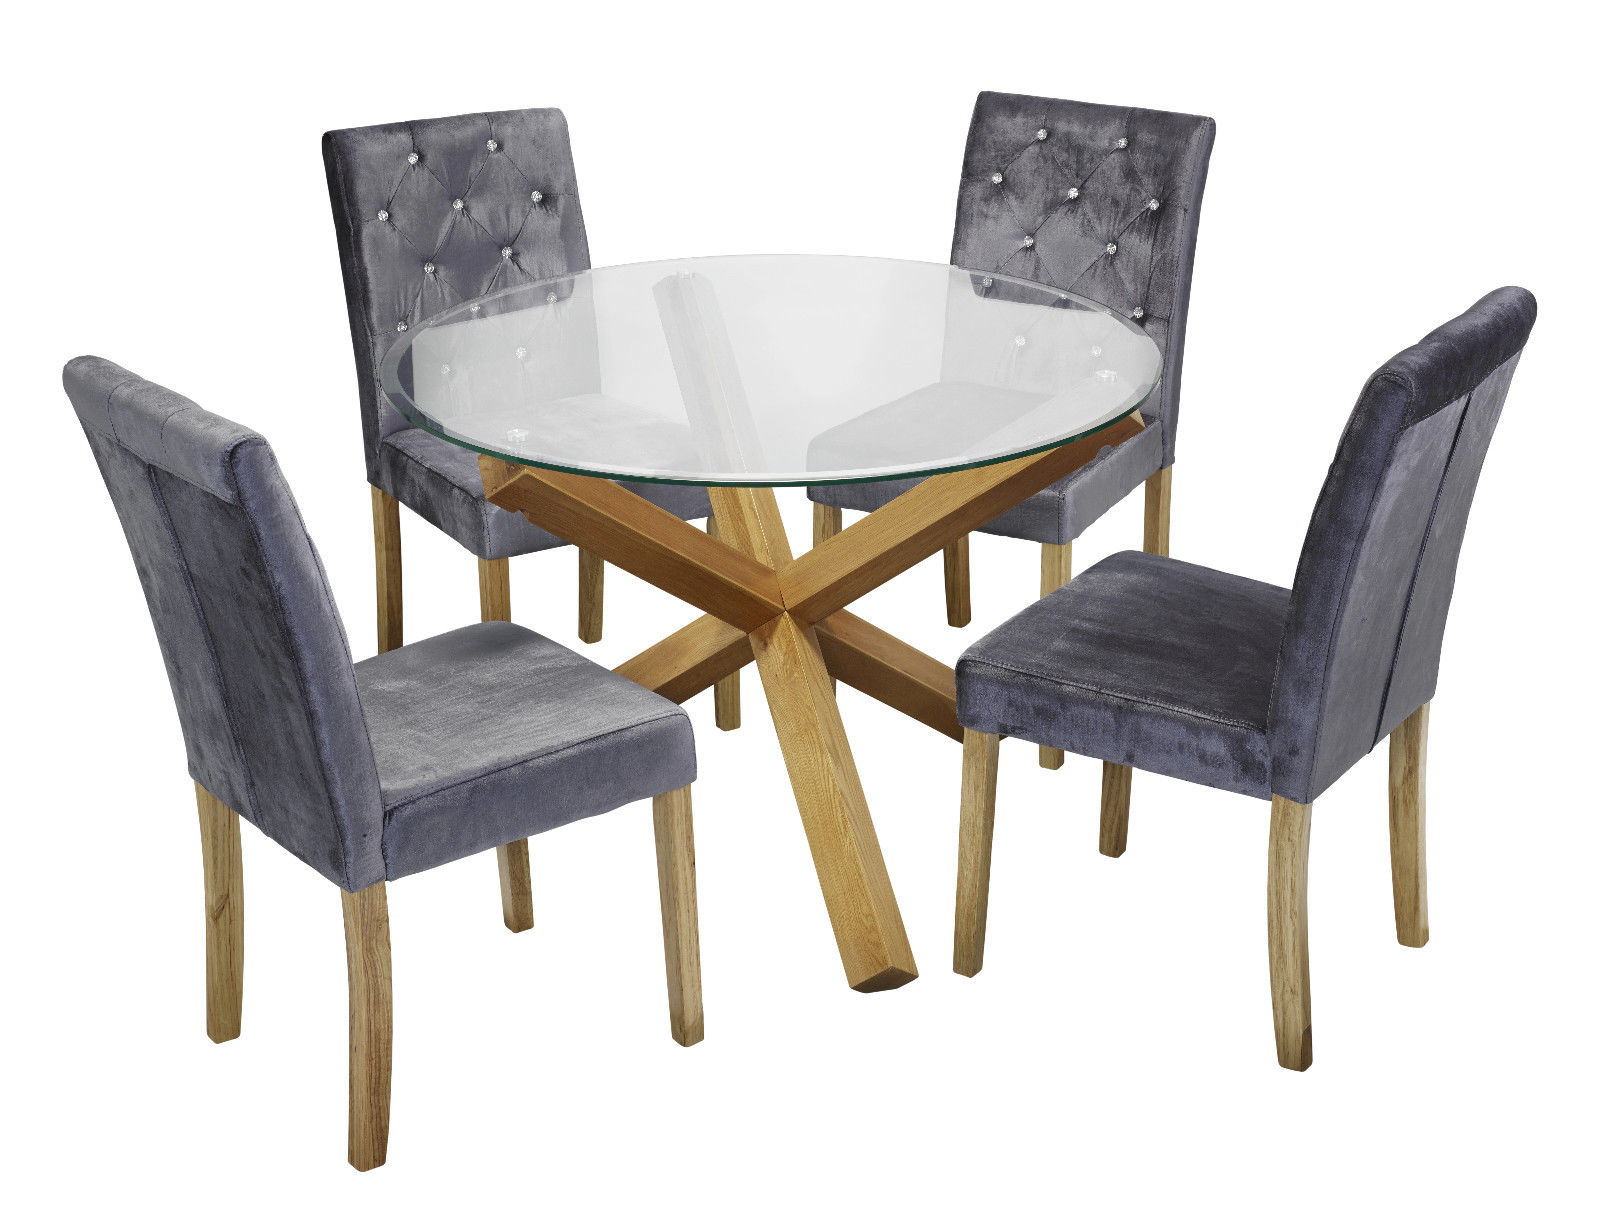 Widely Used Details About Trend Solid Oak Round Glass Top Dining Table & 4 Amour Silver Fabric Chair Set Regarding Round Dining Tables With Glass Top (View 12 of 25)